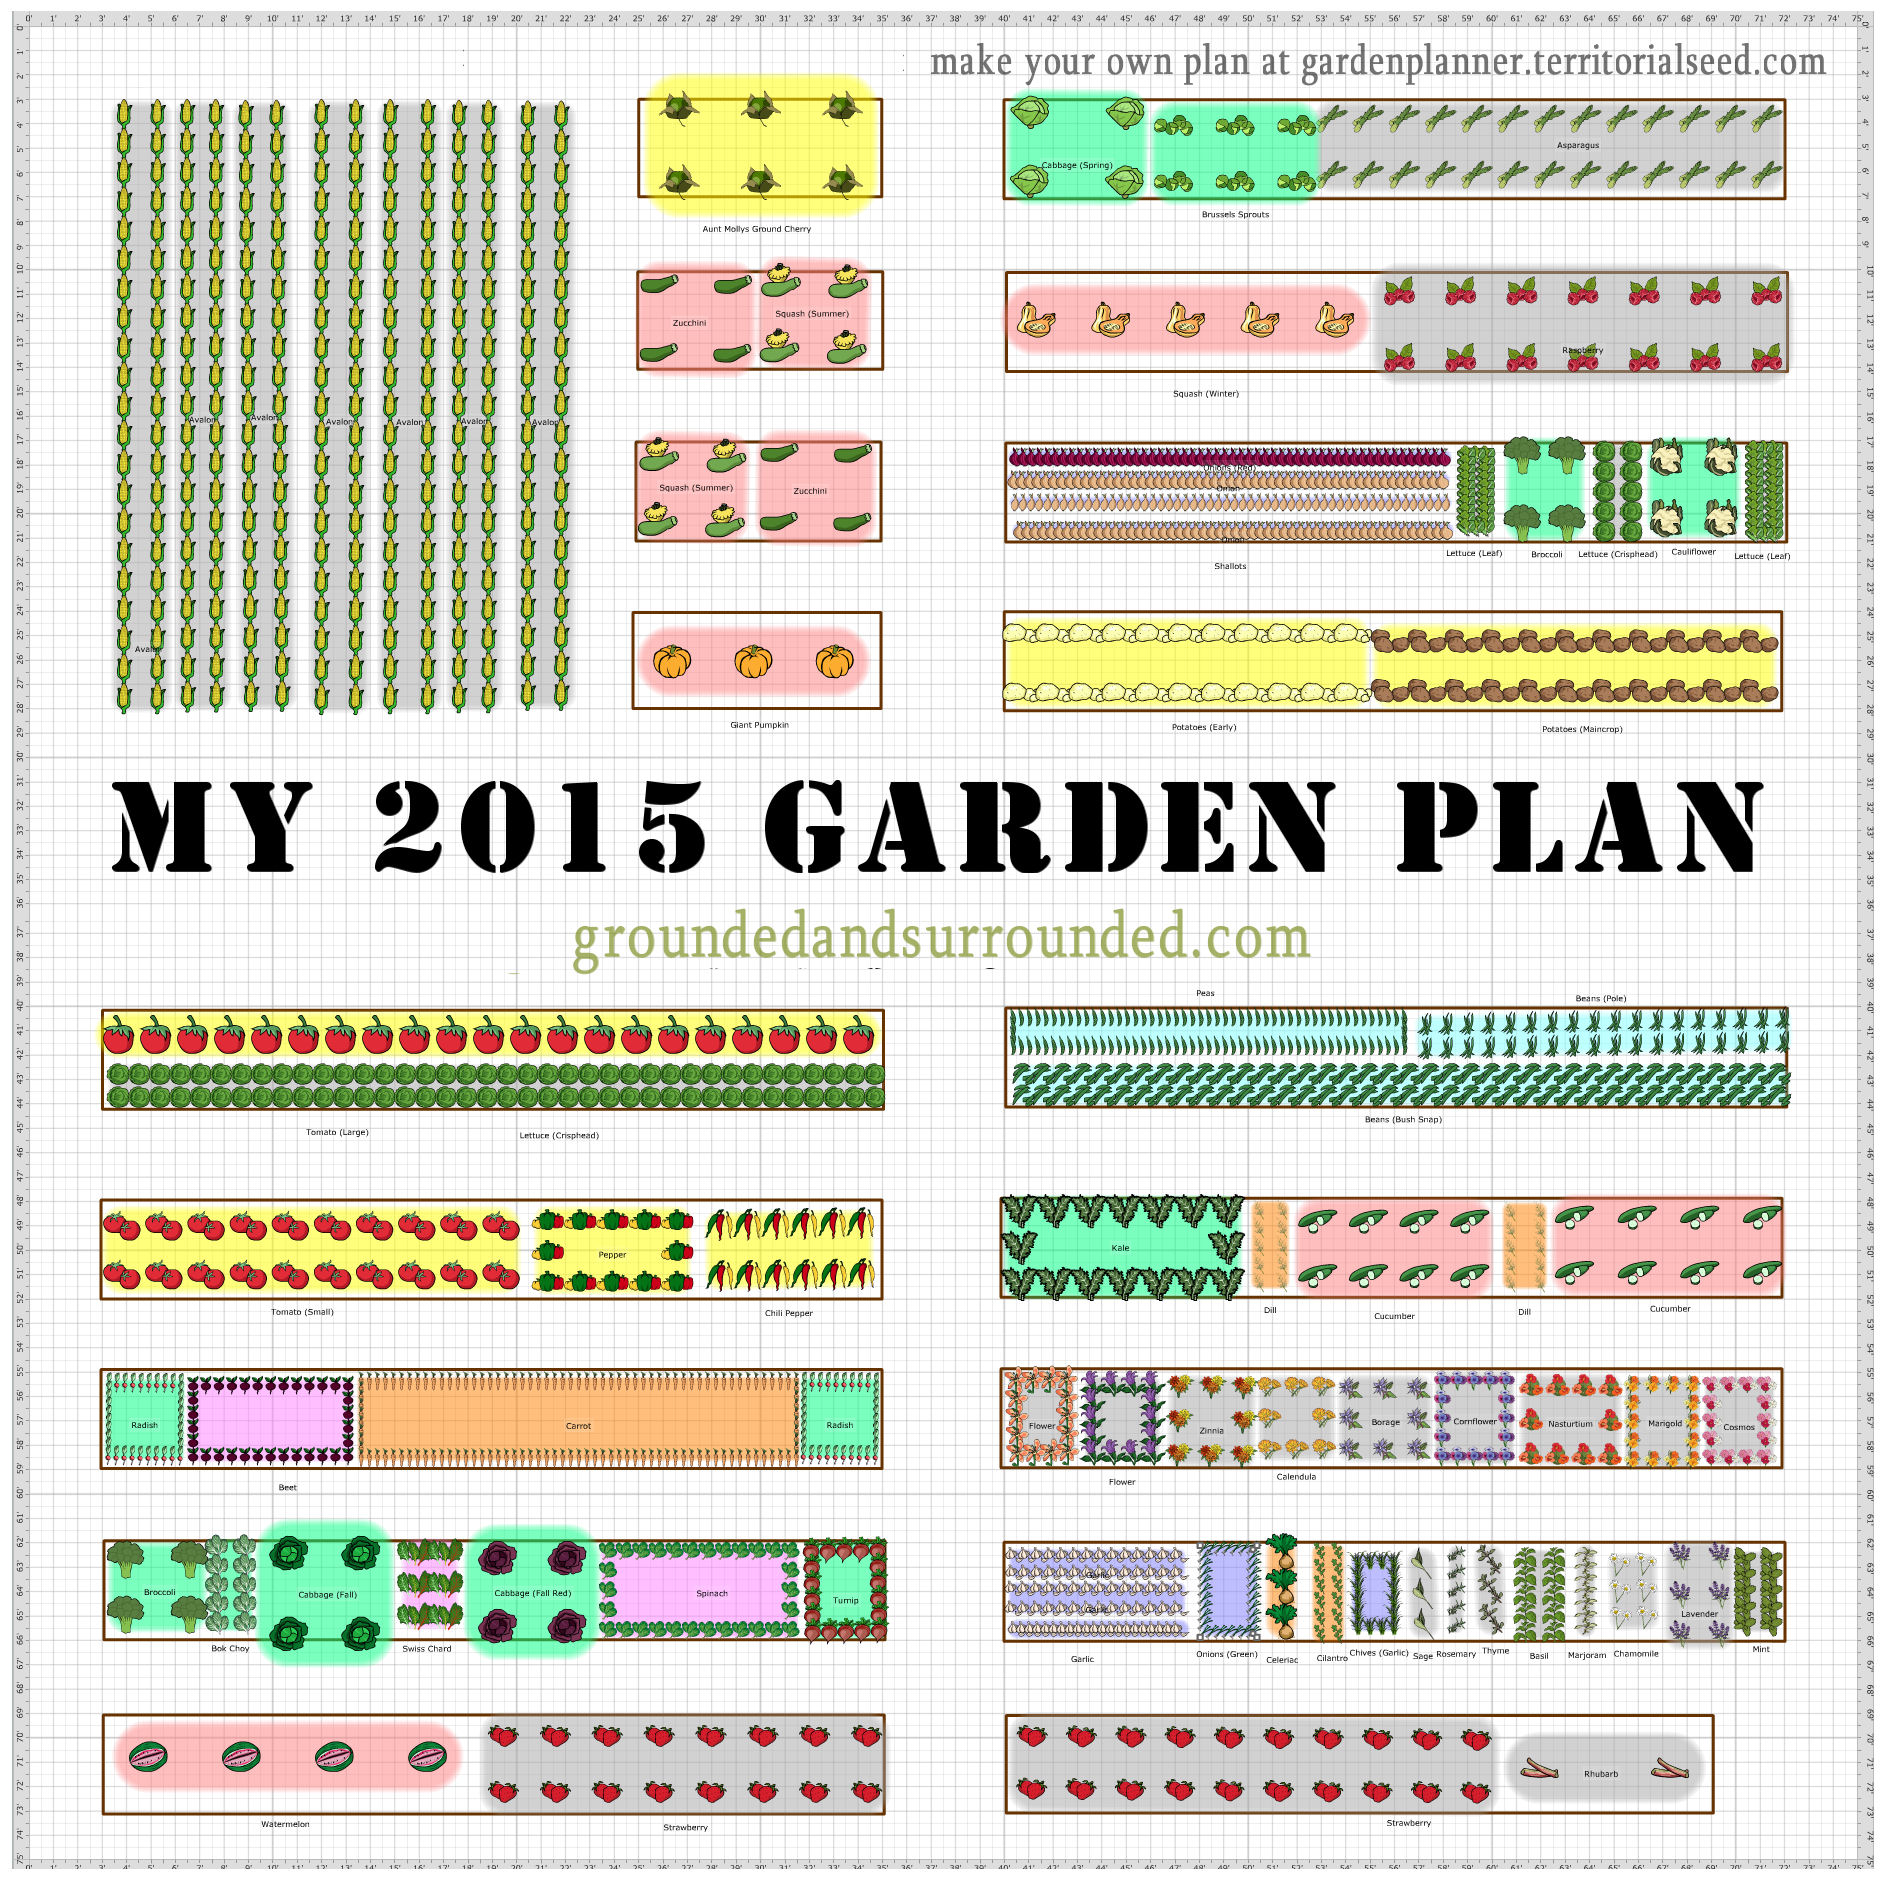 My 5 000 sq ft vegetable garden plan grounded surrounded for Home garden layout